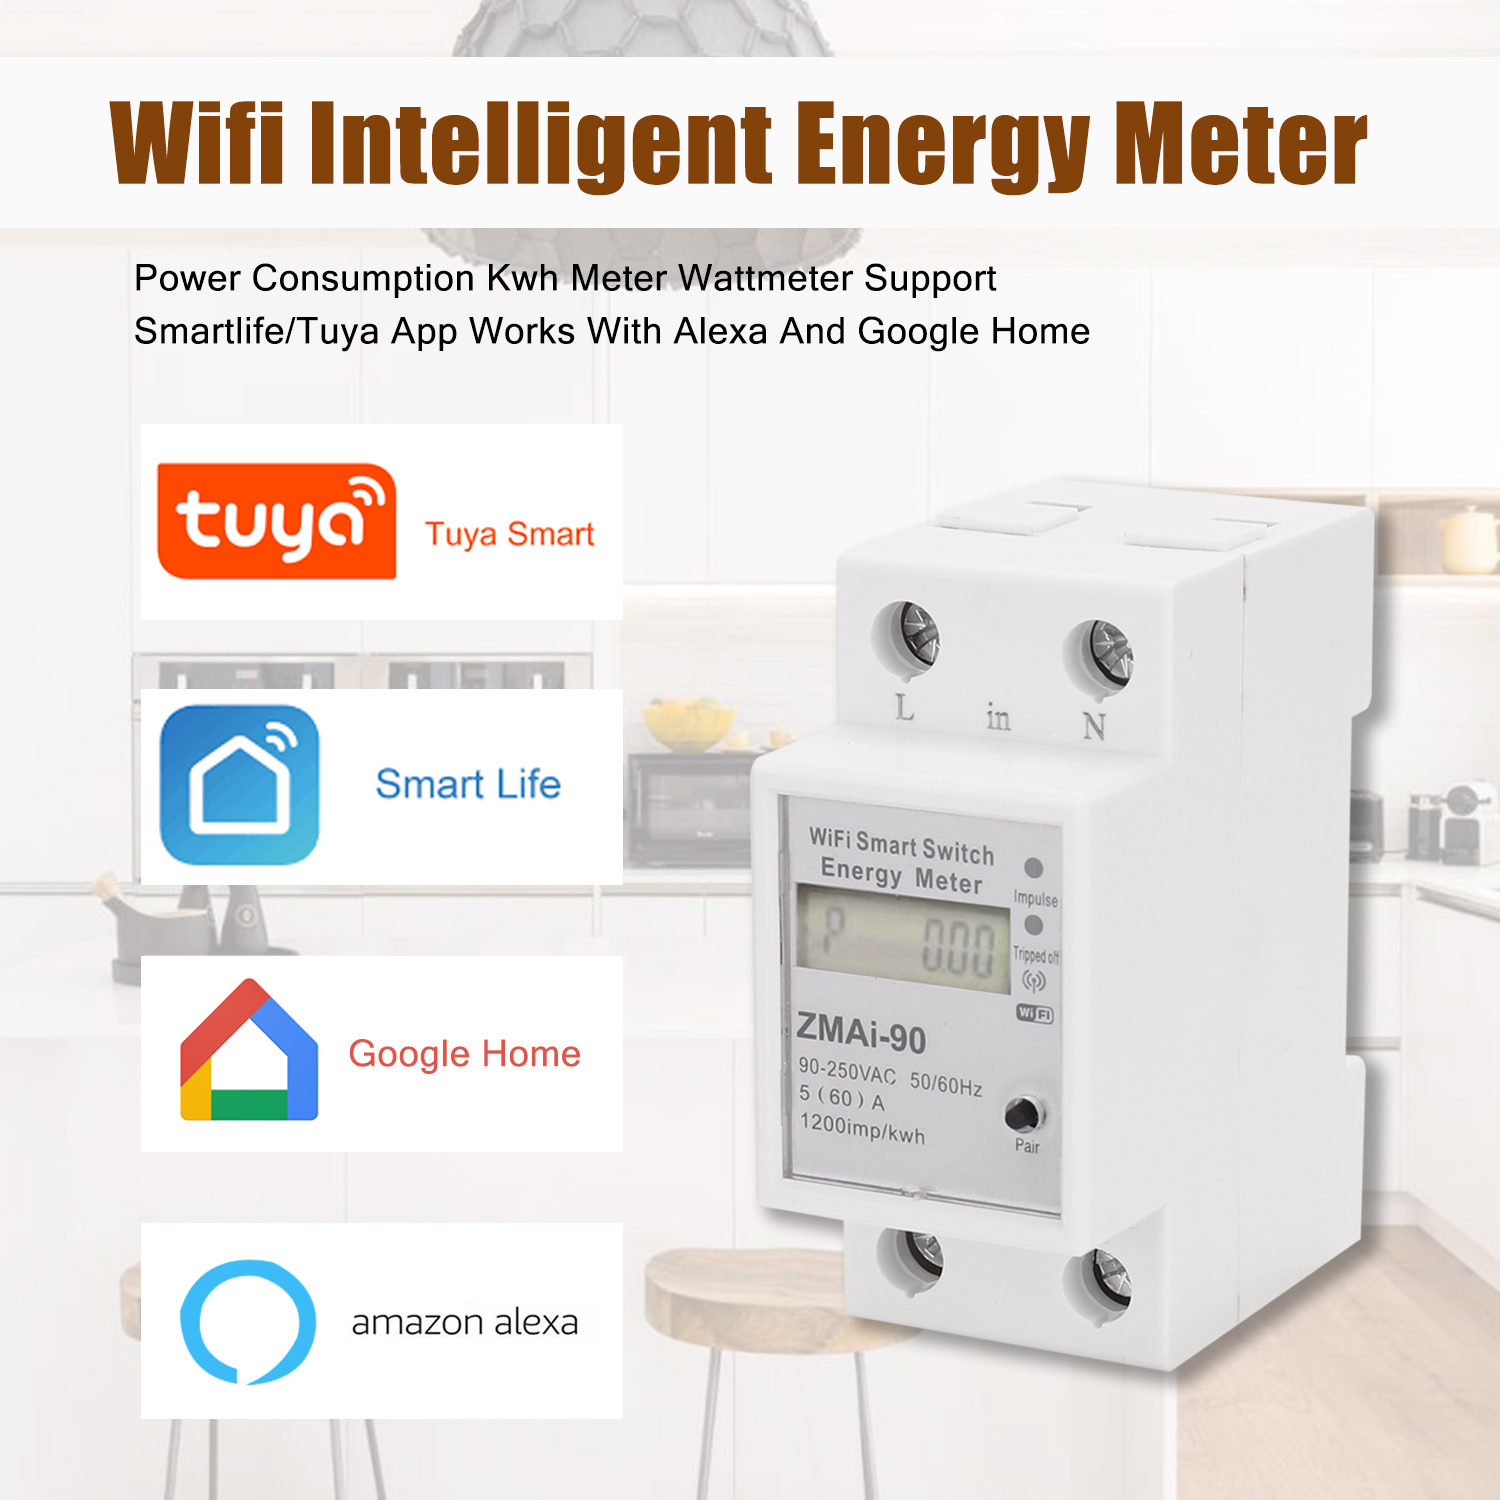 Tools : WIFI Smart Energy Meter Single-phase Rail Type LCD Display Energy Meter Support Smartlife Tuya App Works With Alexa Google Home